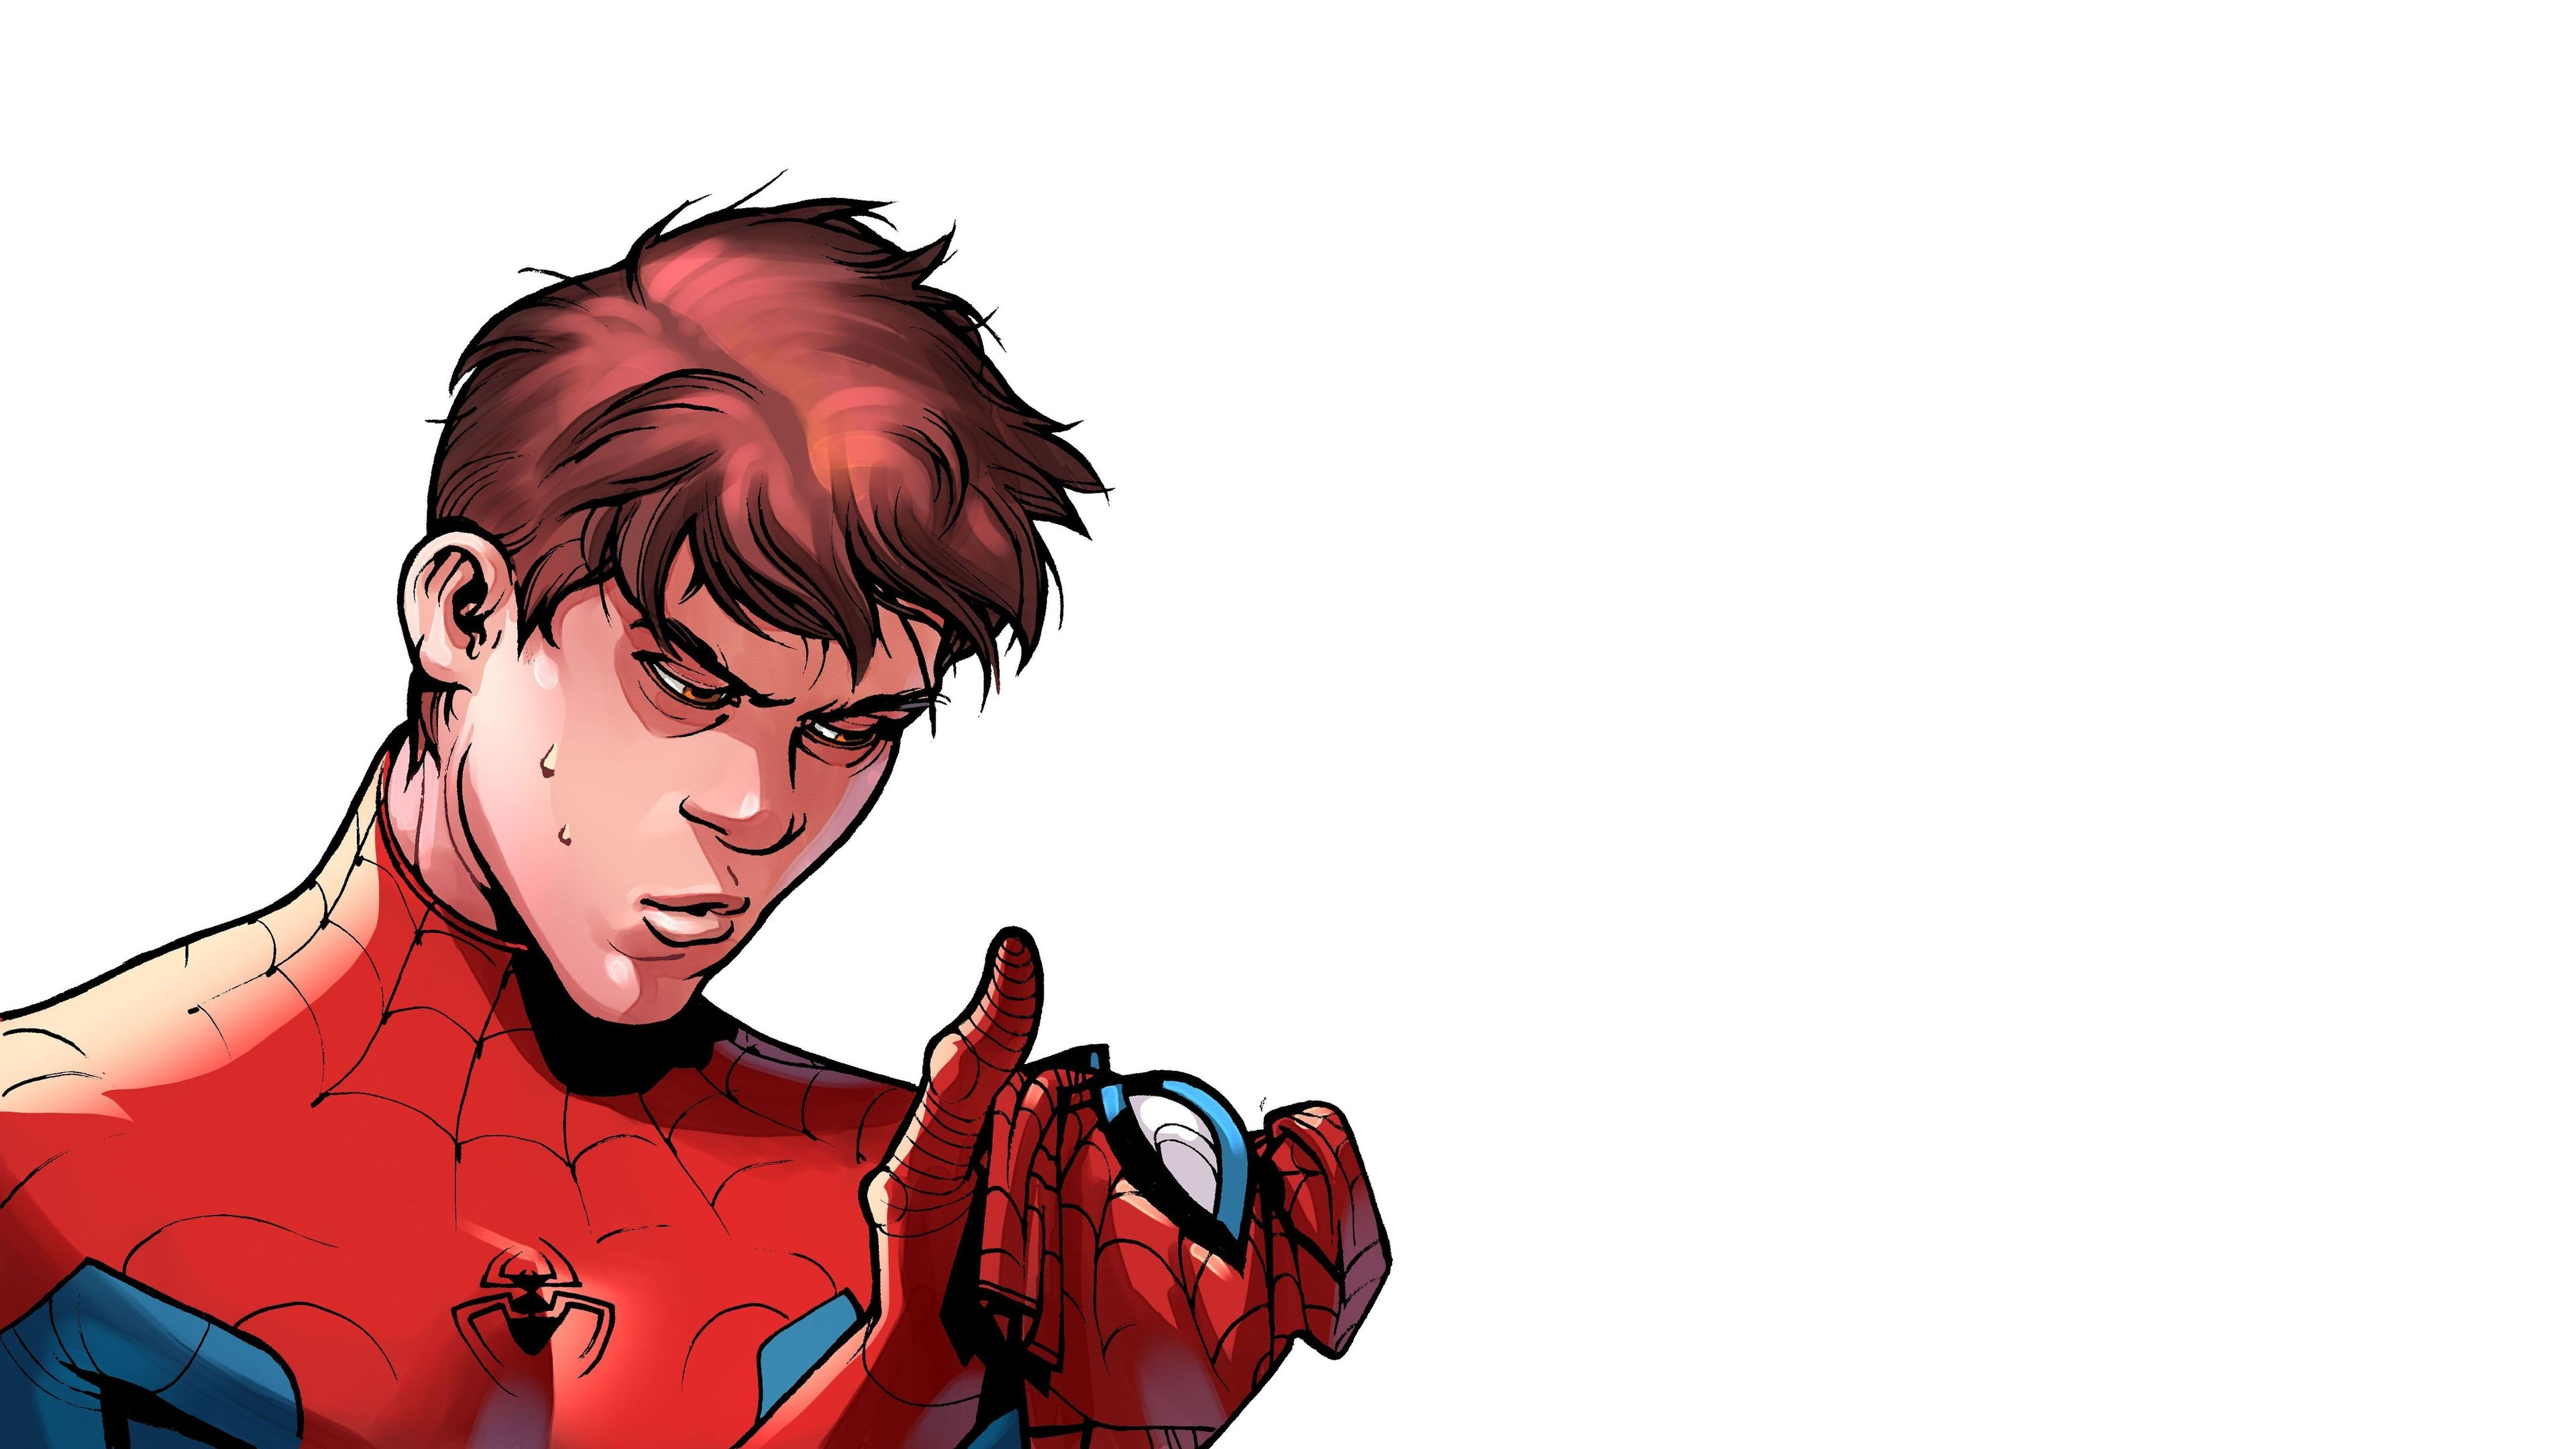 spiderman mask off art 1541294288 - Spiderman Mask Off Art - superheroes wallpapers, spiderman wallpapers, hd-wallpapers, digital art wallpapers, artwork wallpapers, 5k wallpapers, 4k-wallpapers